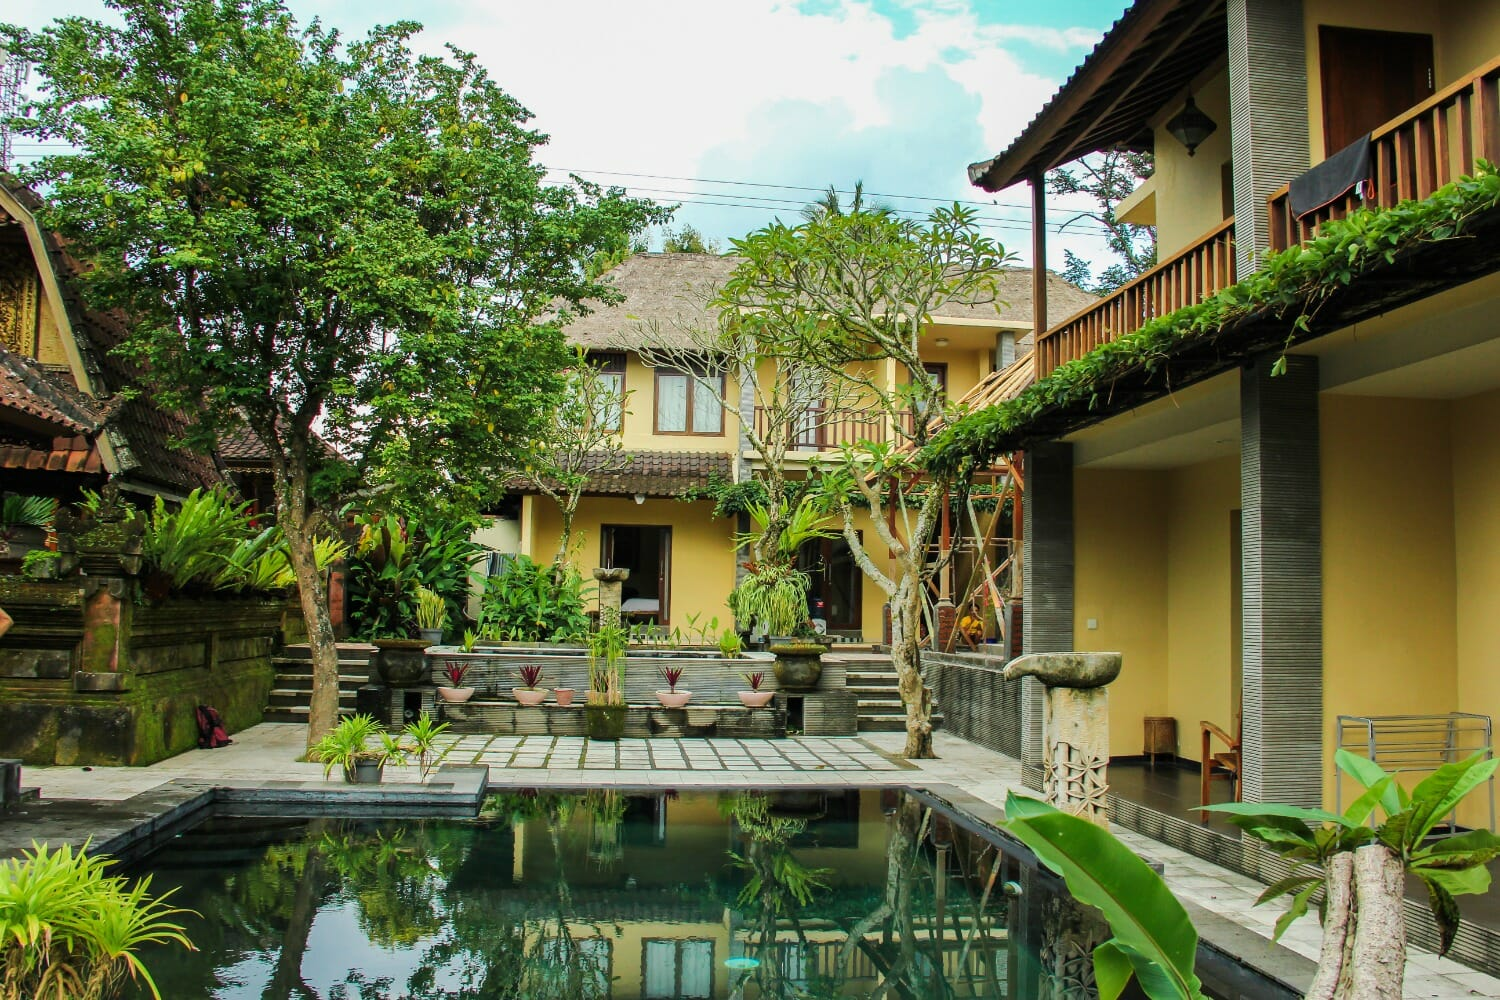 BALI YOGA RETREAT IN UBUD - SOUL EARTH